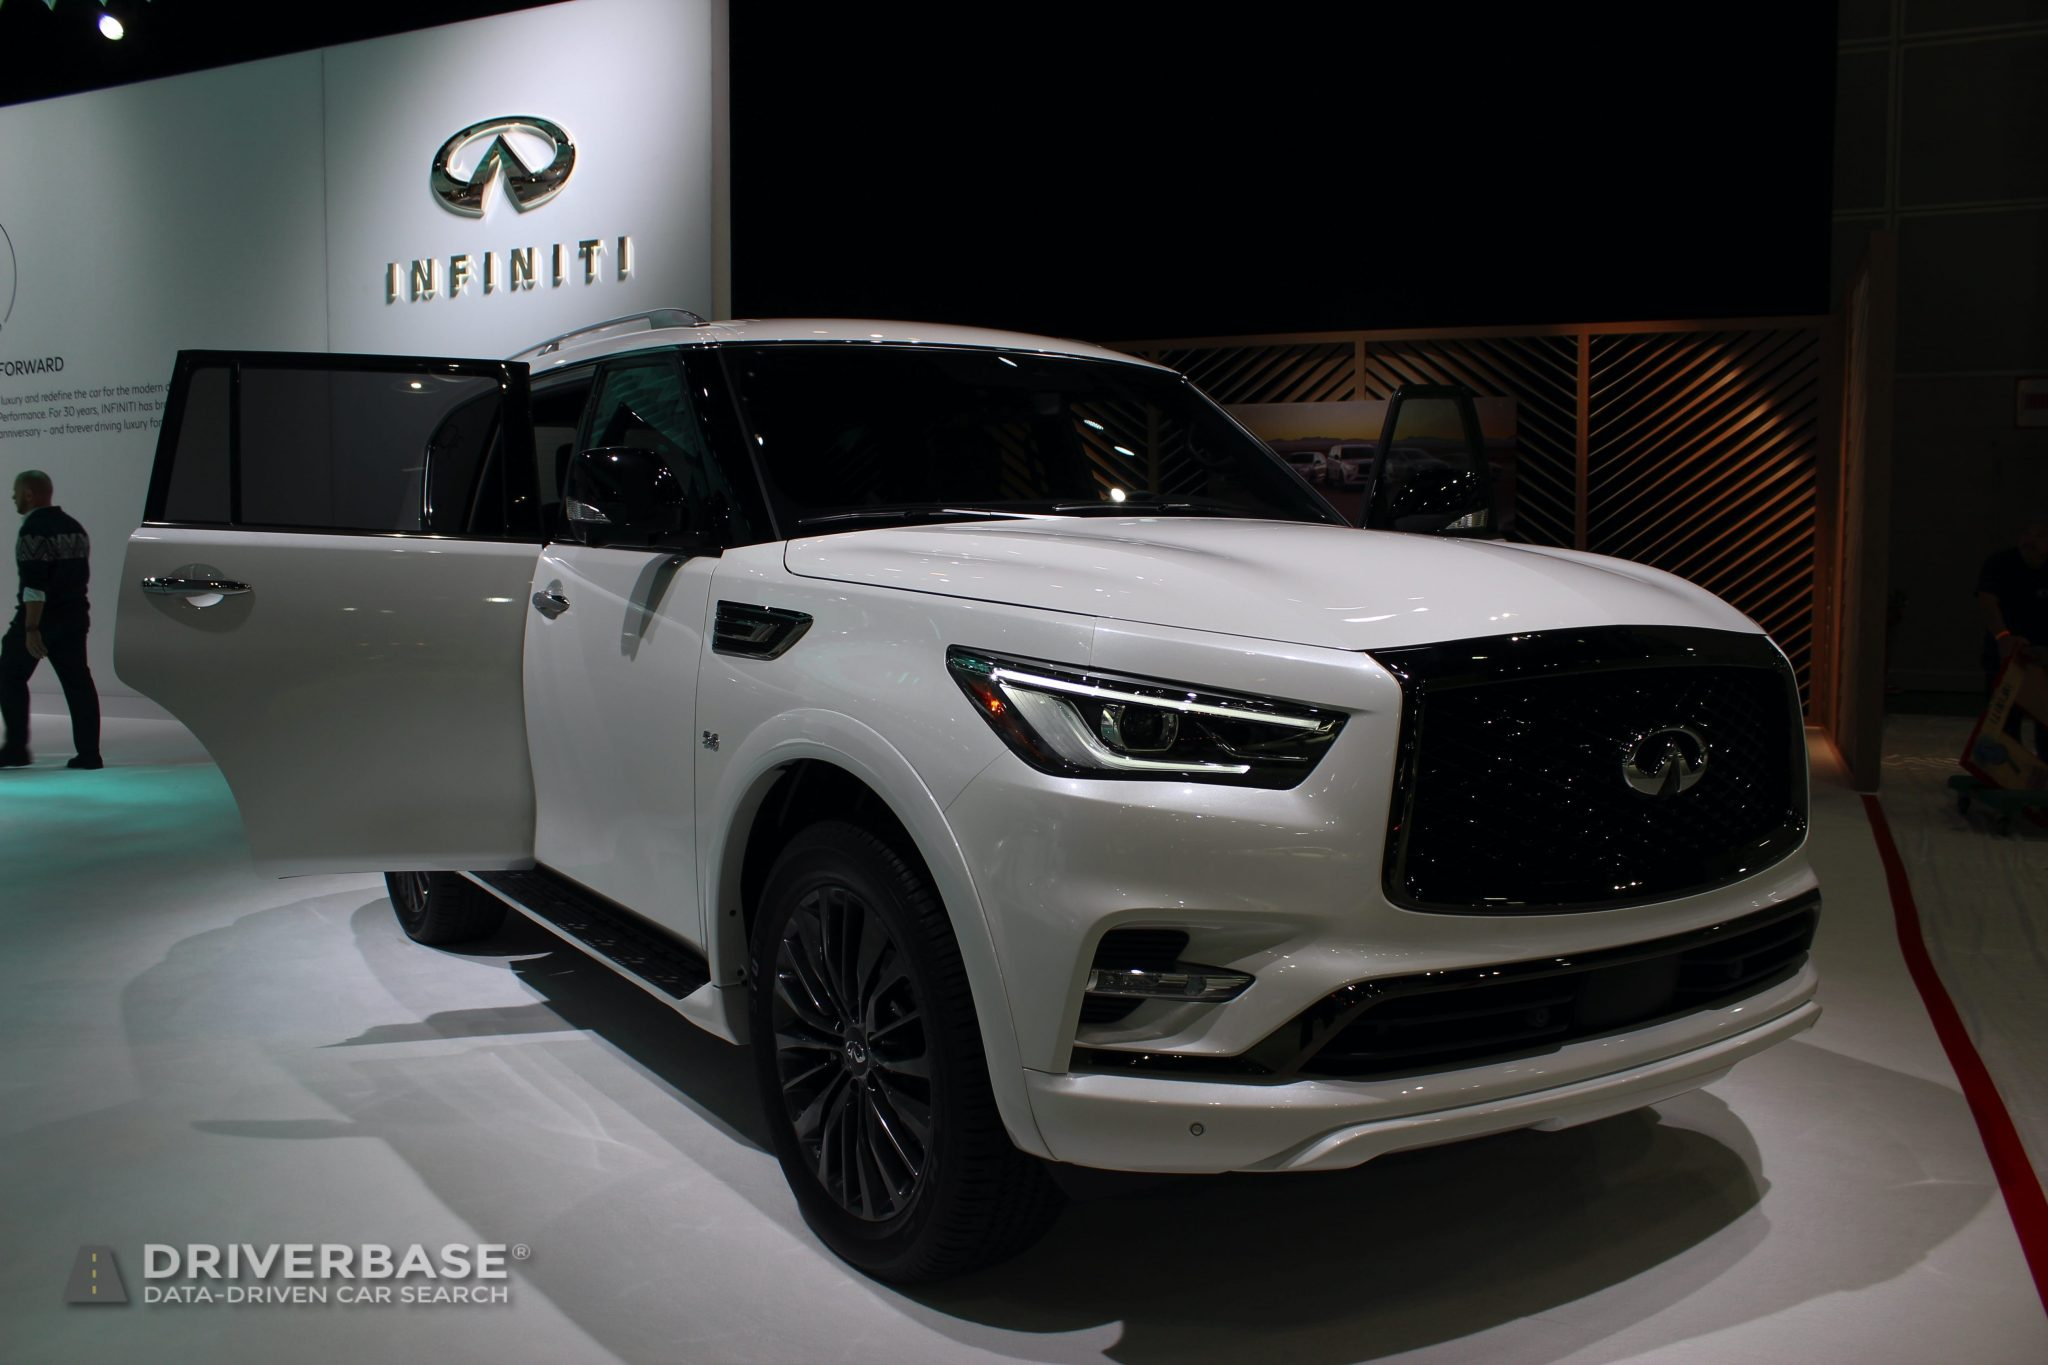 2020 Infiniti QX80 at the 2019 Los Angeles Auto Show